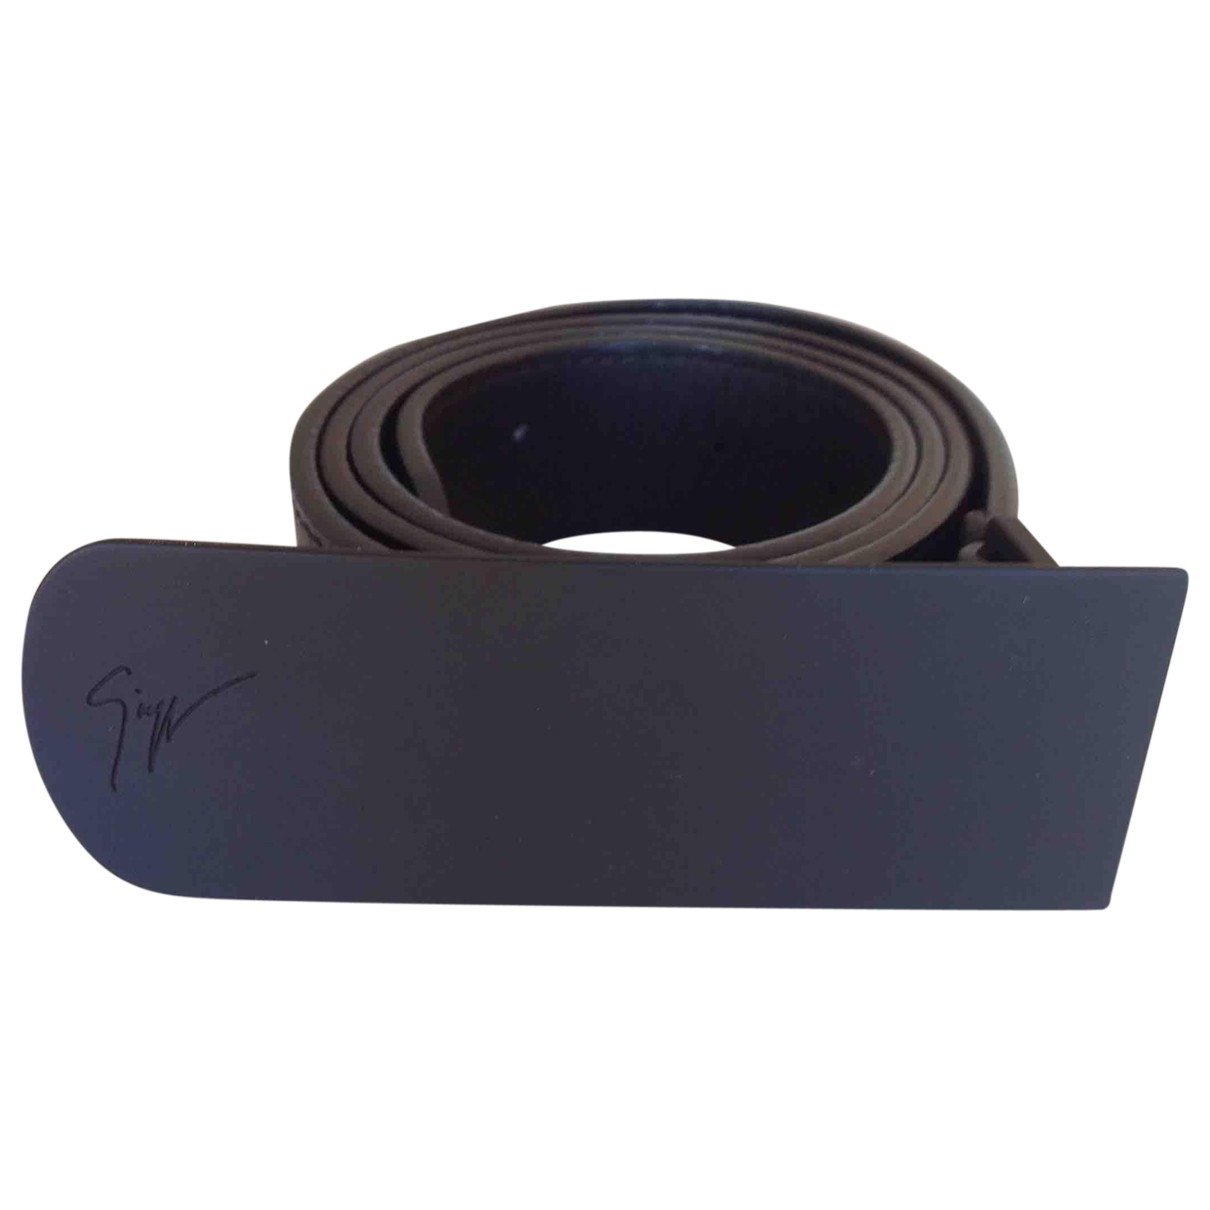 Giuseppe Zanotti \N Black Leather belt for Men 90 cm